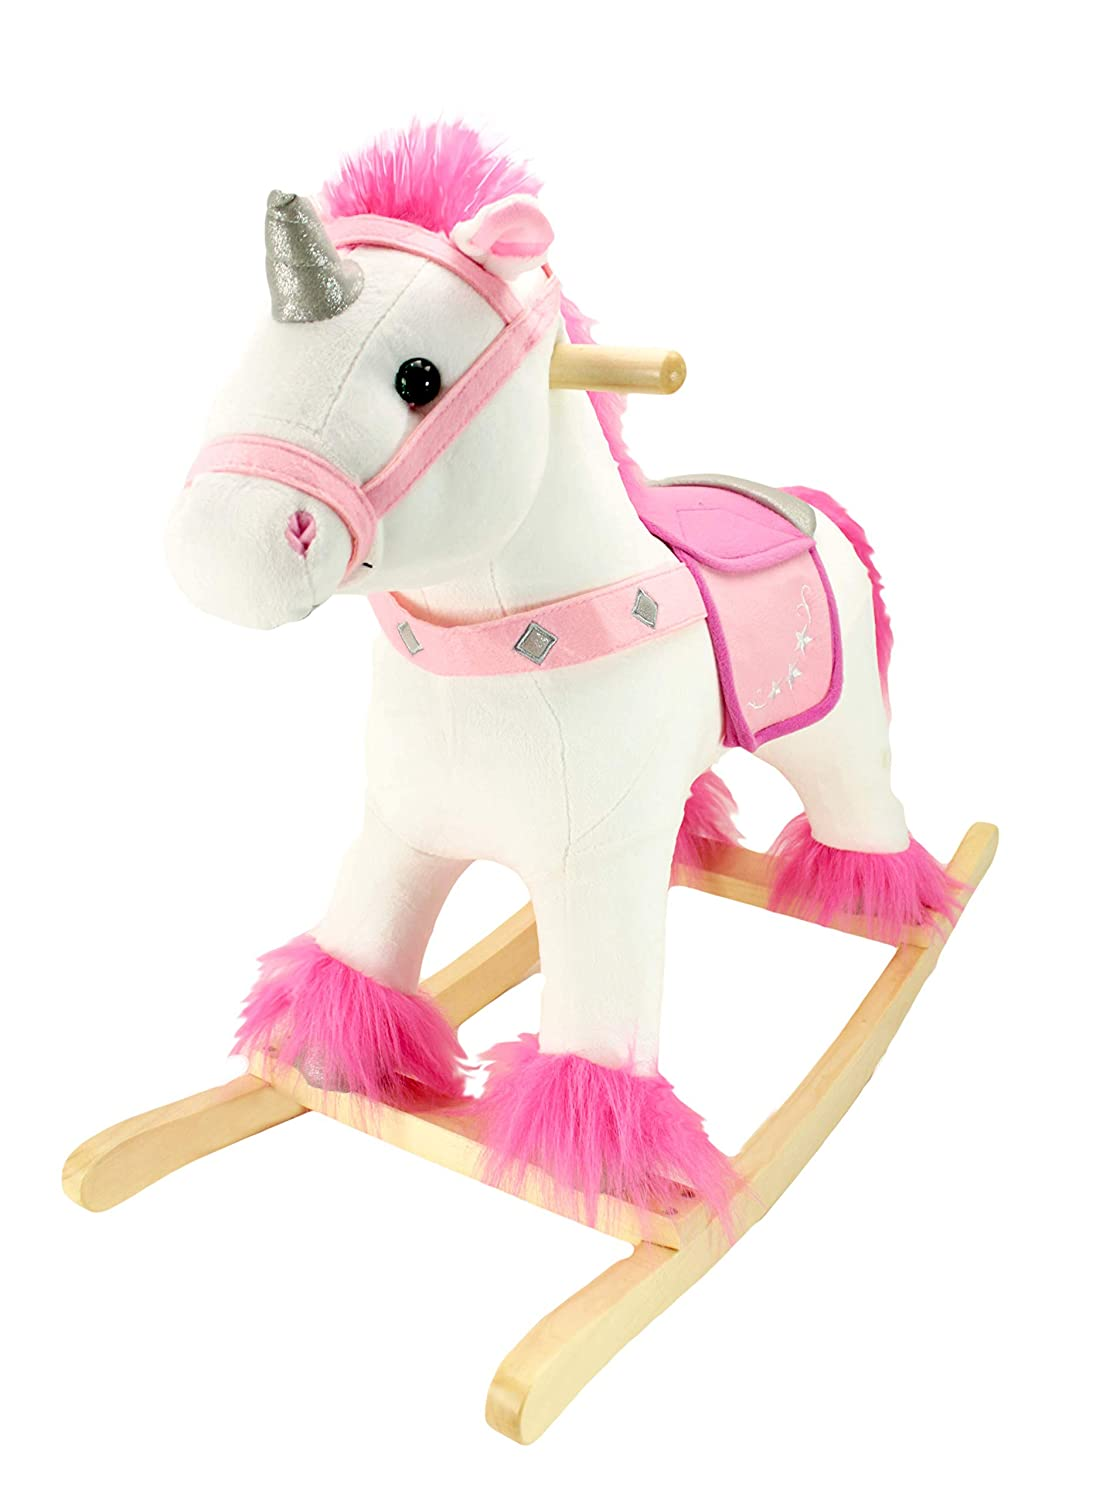 Animal Adventure | Real Wood Ride-On Plush Rocker | White and Pink Unicorn | Perfect for Ages 3+